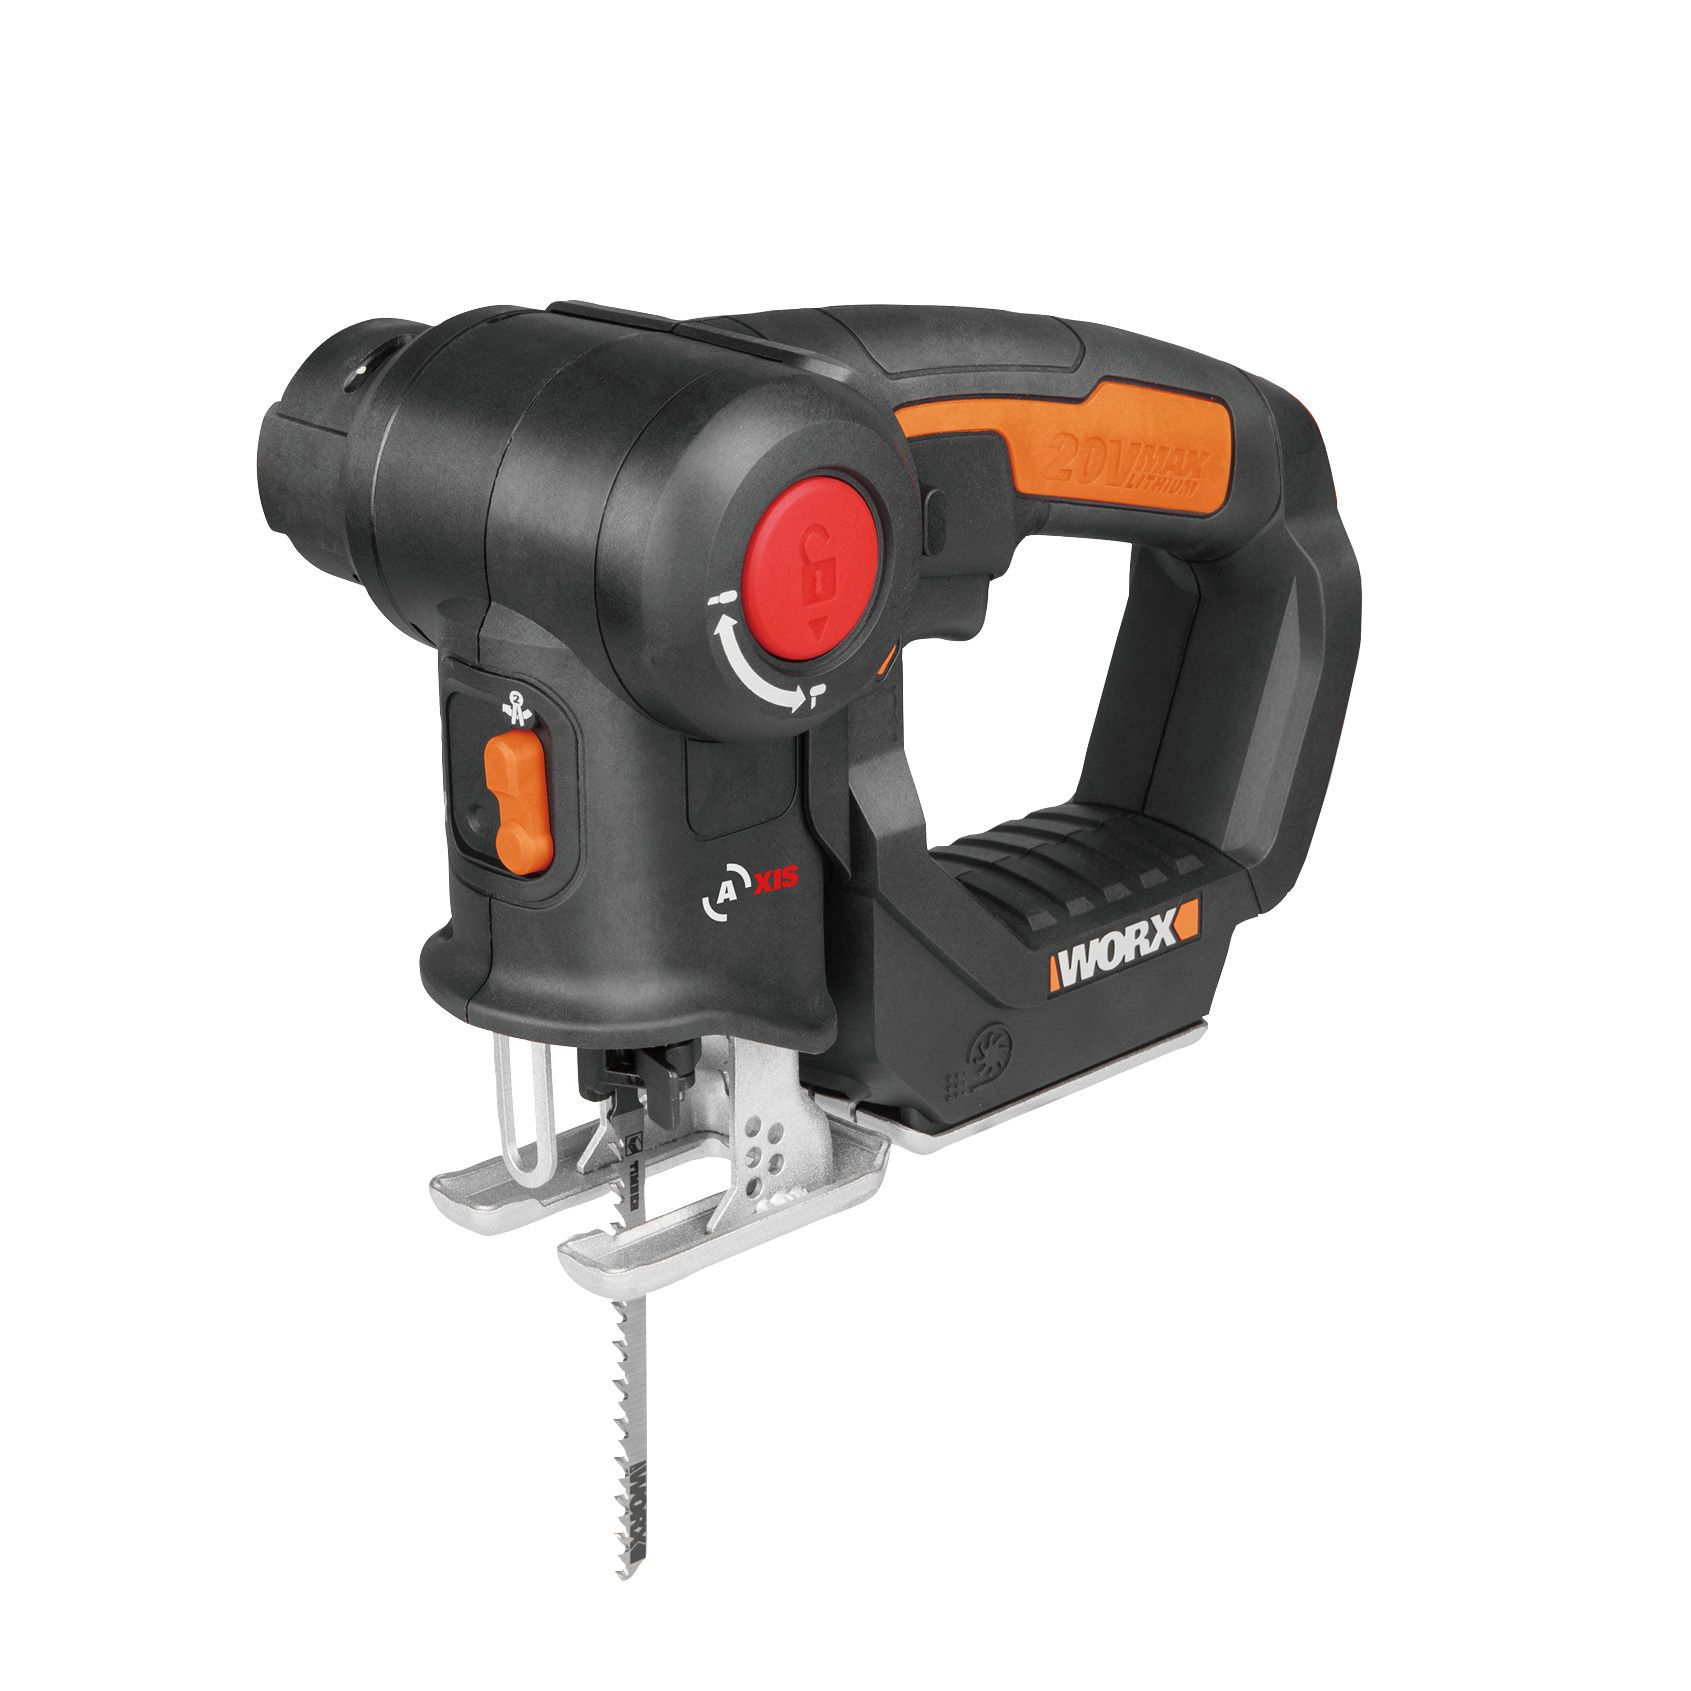 worx powershare 20v cordless multi purpose saw wx550 9 bare departments tradepoint. Black Bedroom Furniture Sets. Home Design Ideas